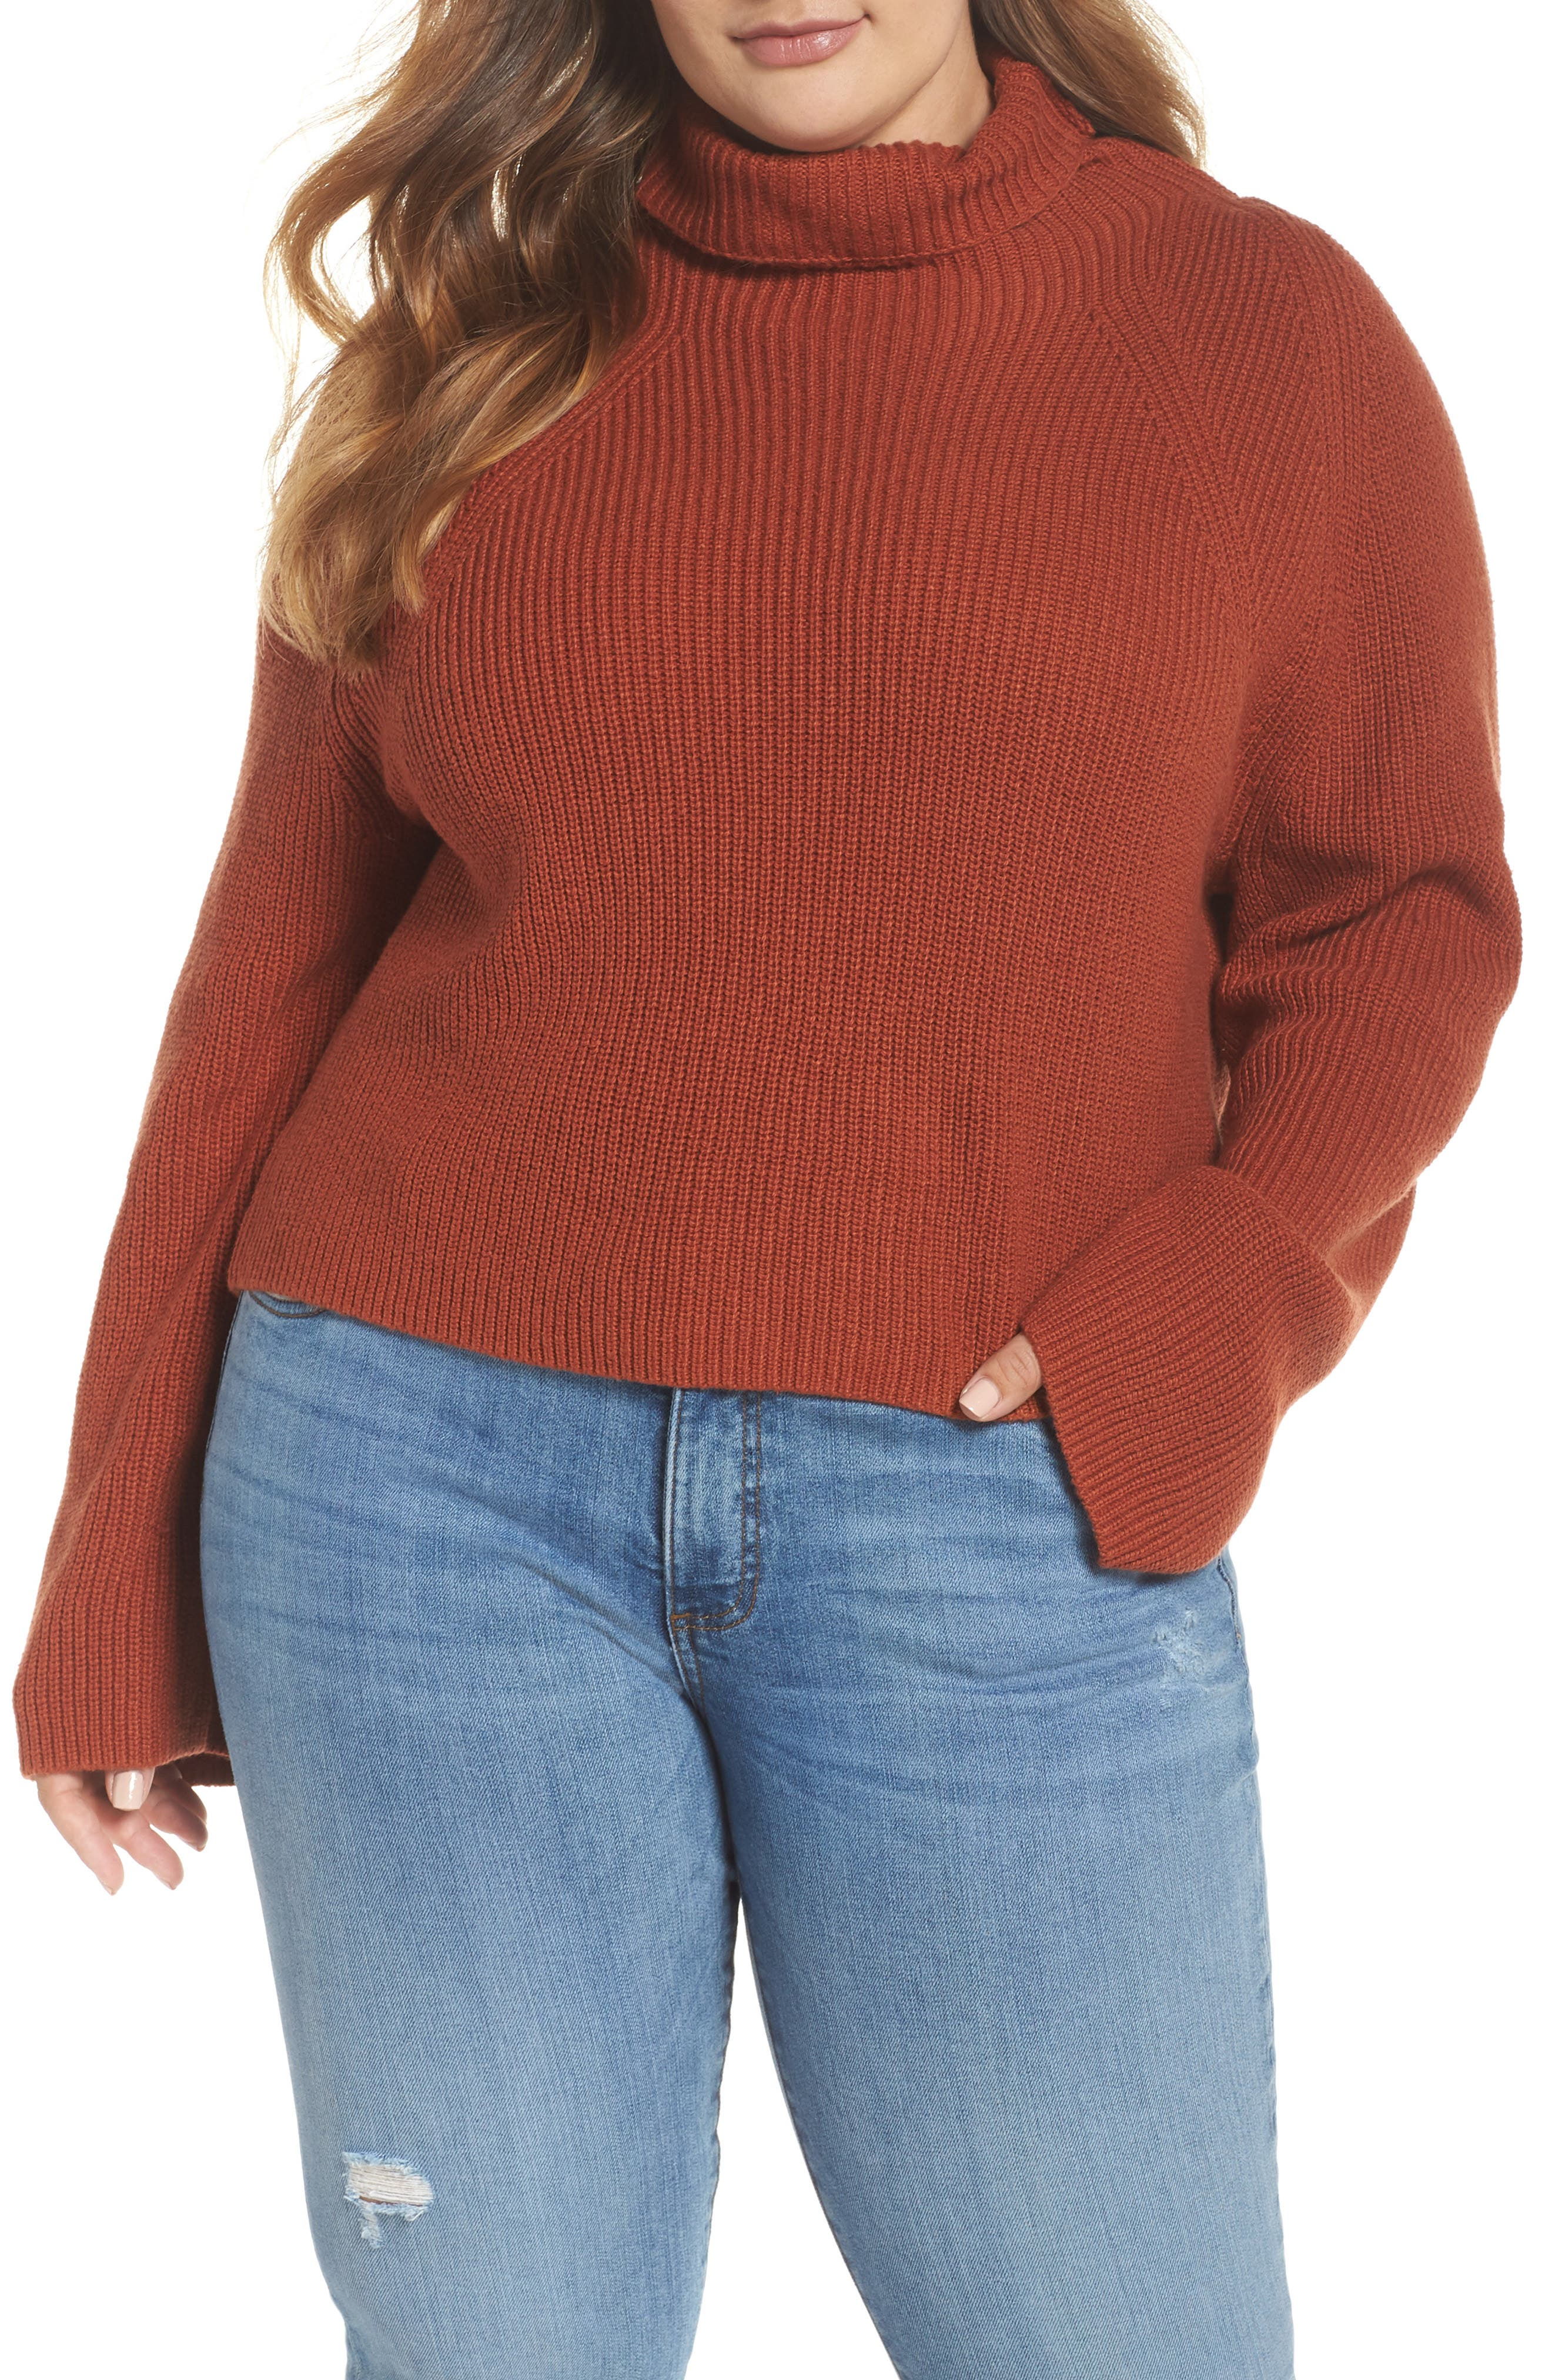 Transfer Stitch Turtleneck Sweater,                             Alternate thumbnail 2, color,                             BROWN SPICE